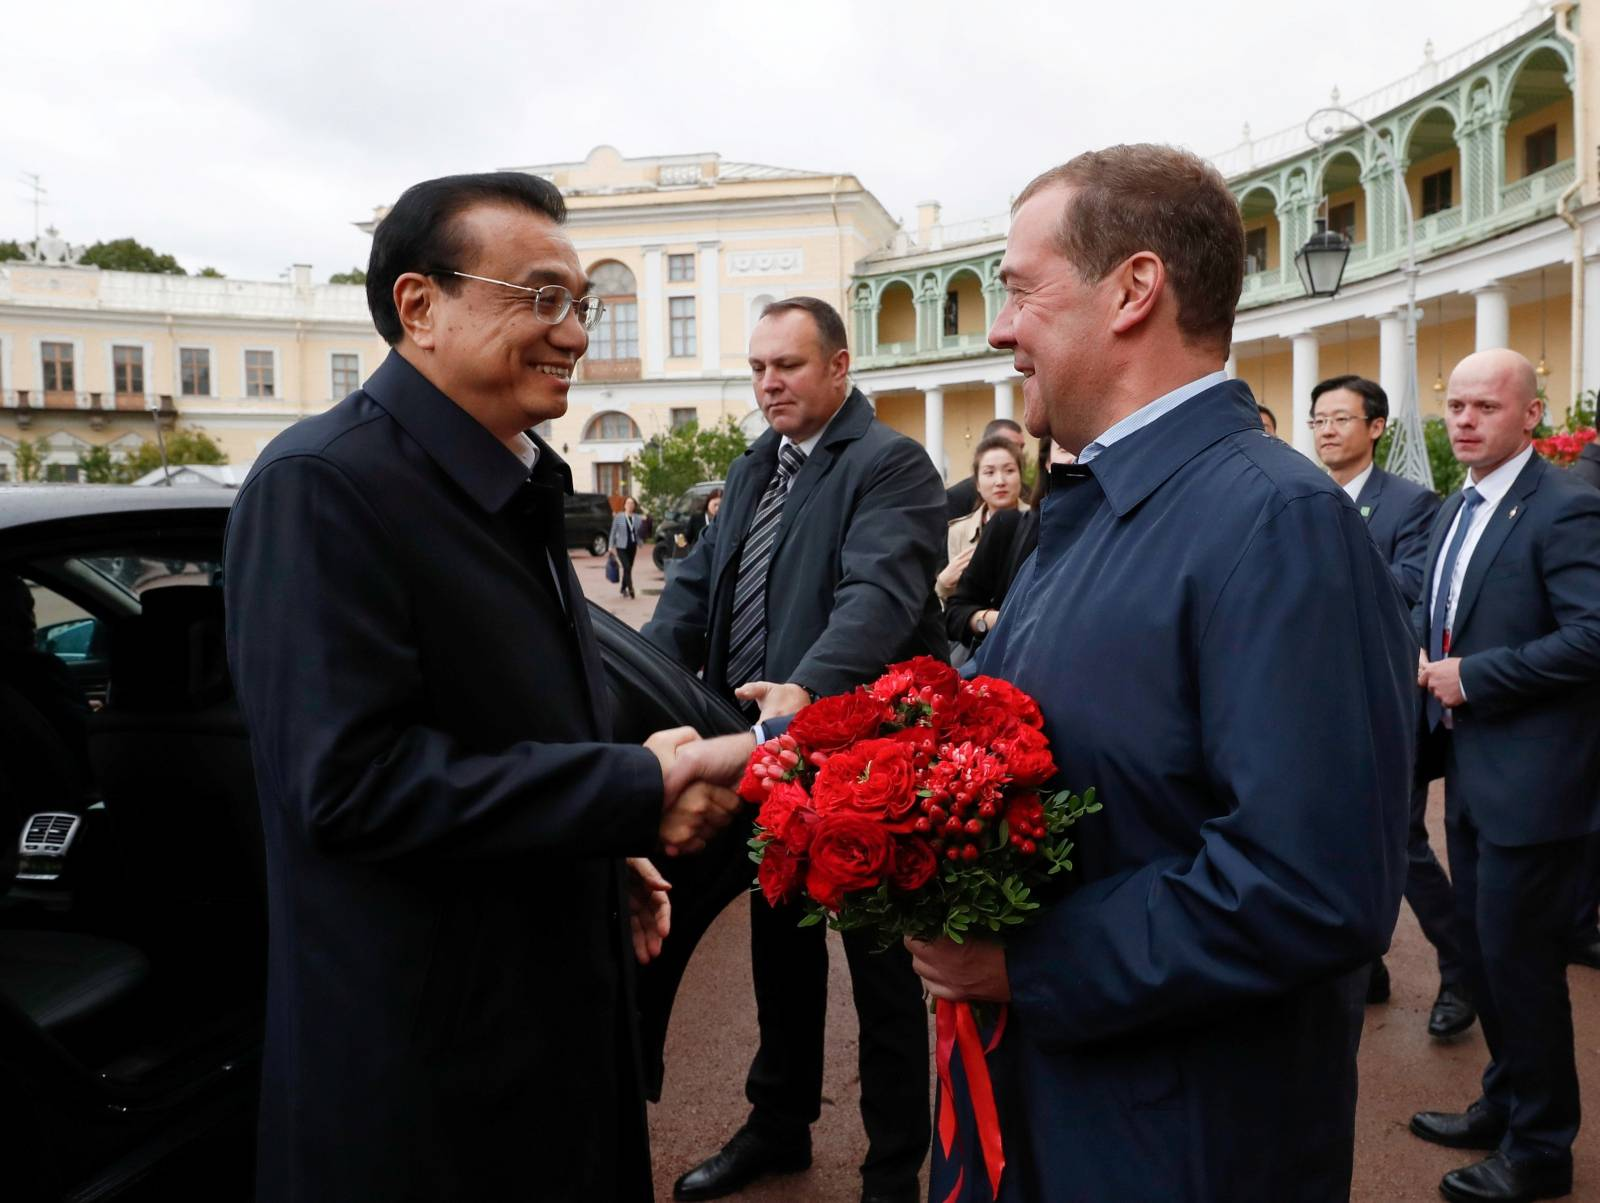 Russian Prime Minister Dmitry Medvedev meets with Chinese Premier Li Keqiang in St. Petersburg